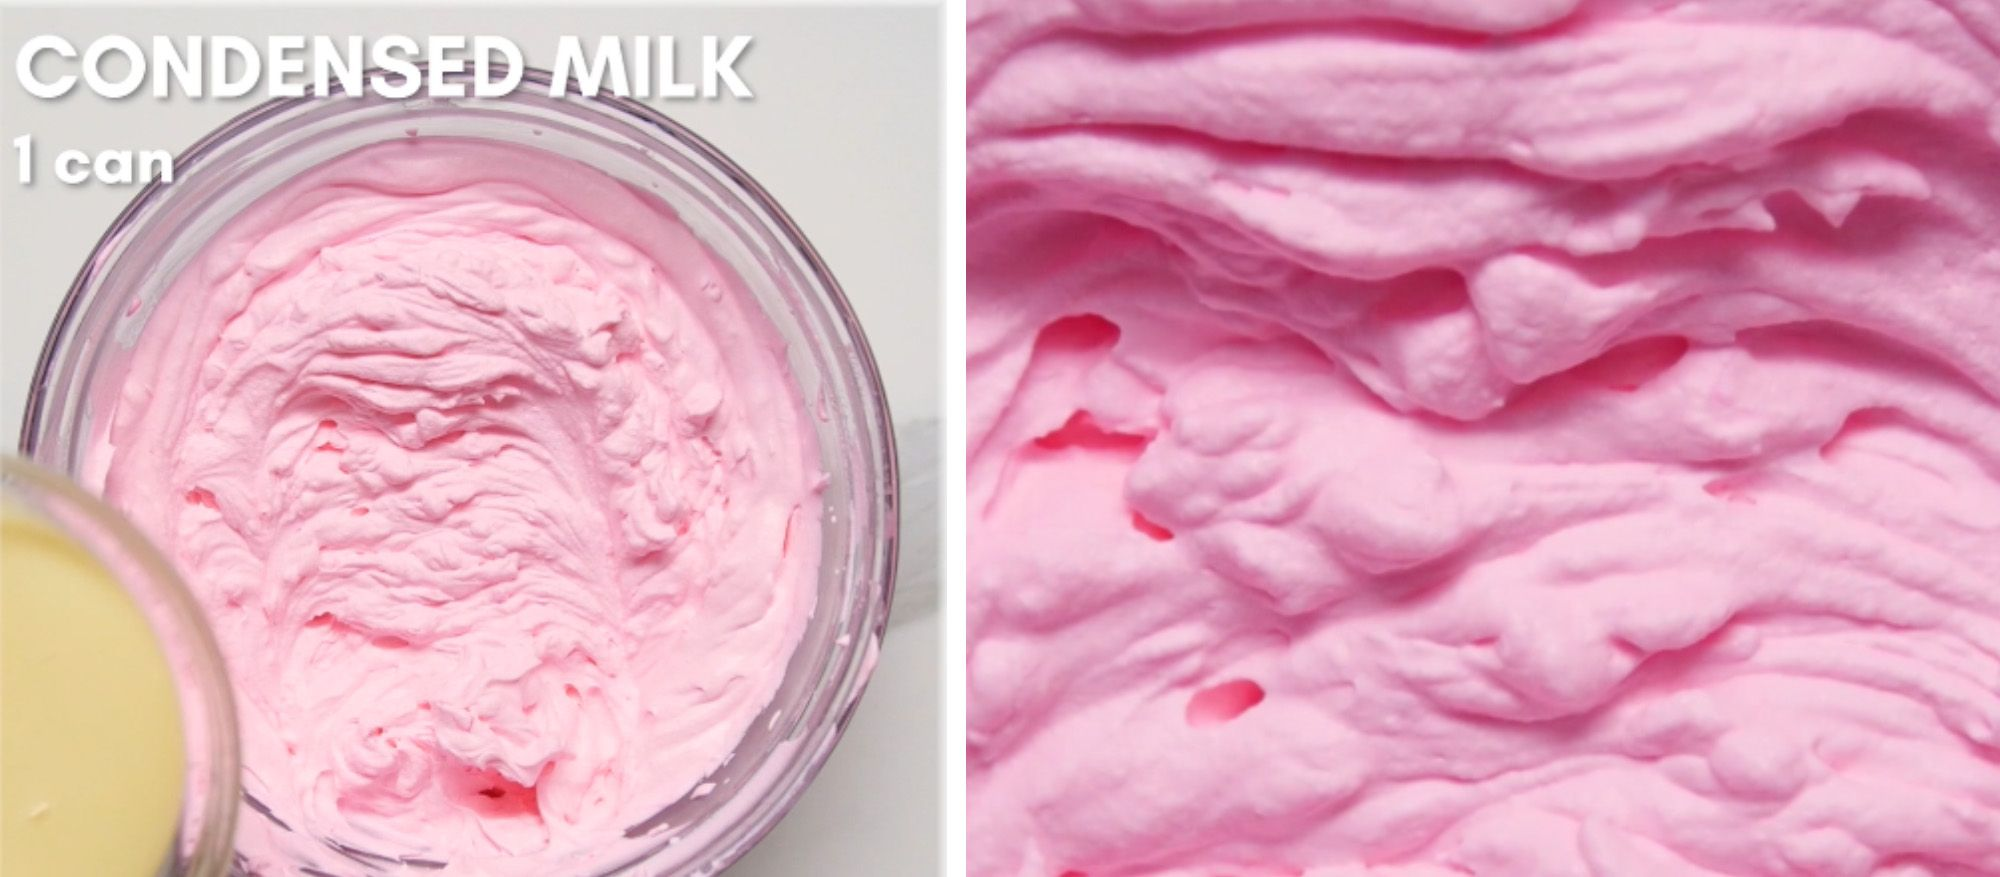 condensed milk being held above a bowl of pink whipped cream